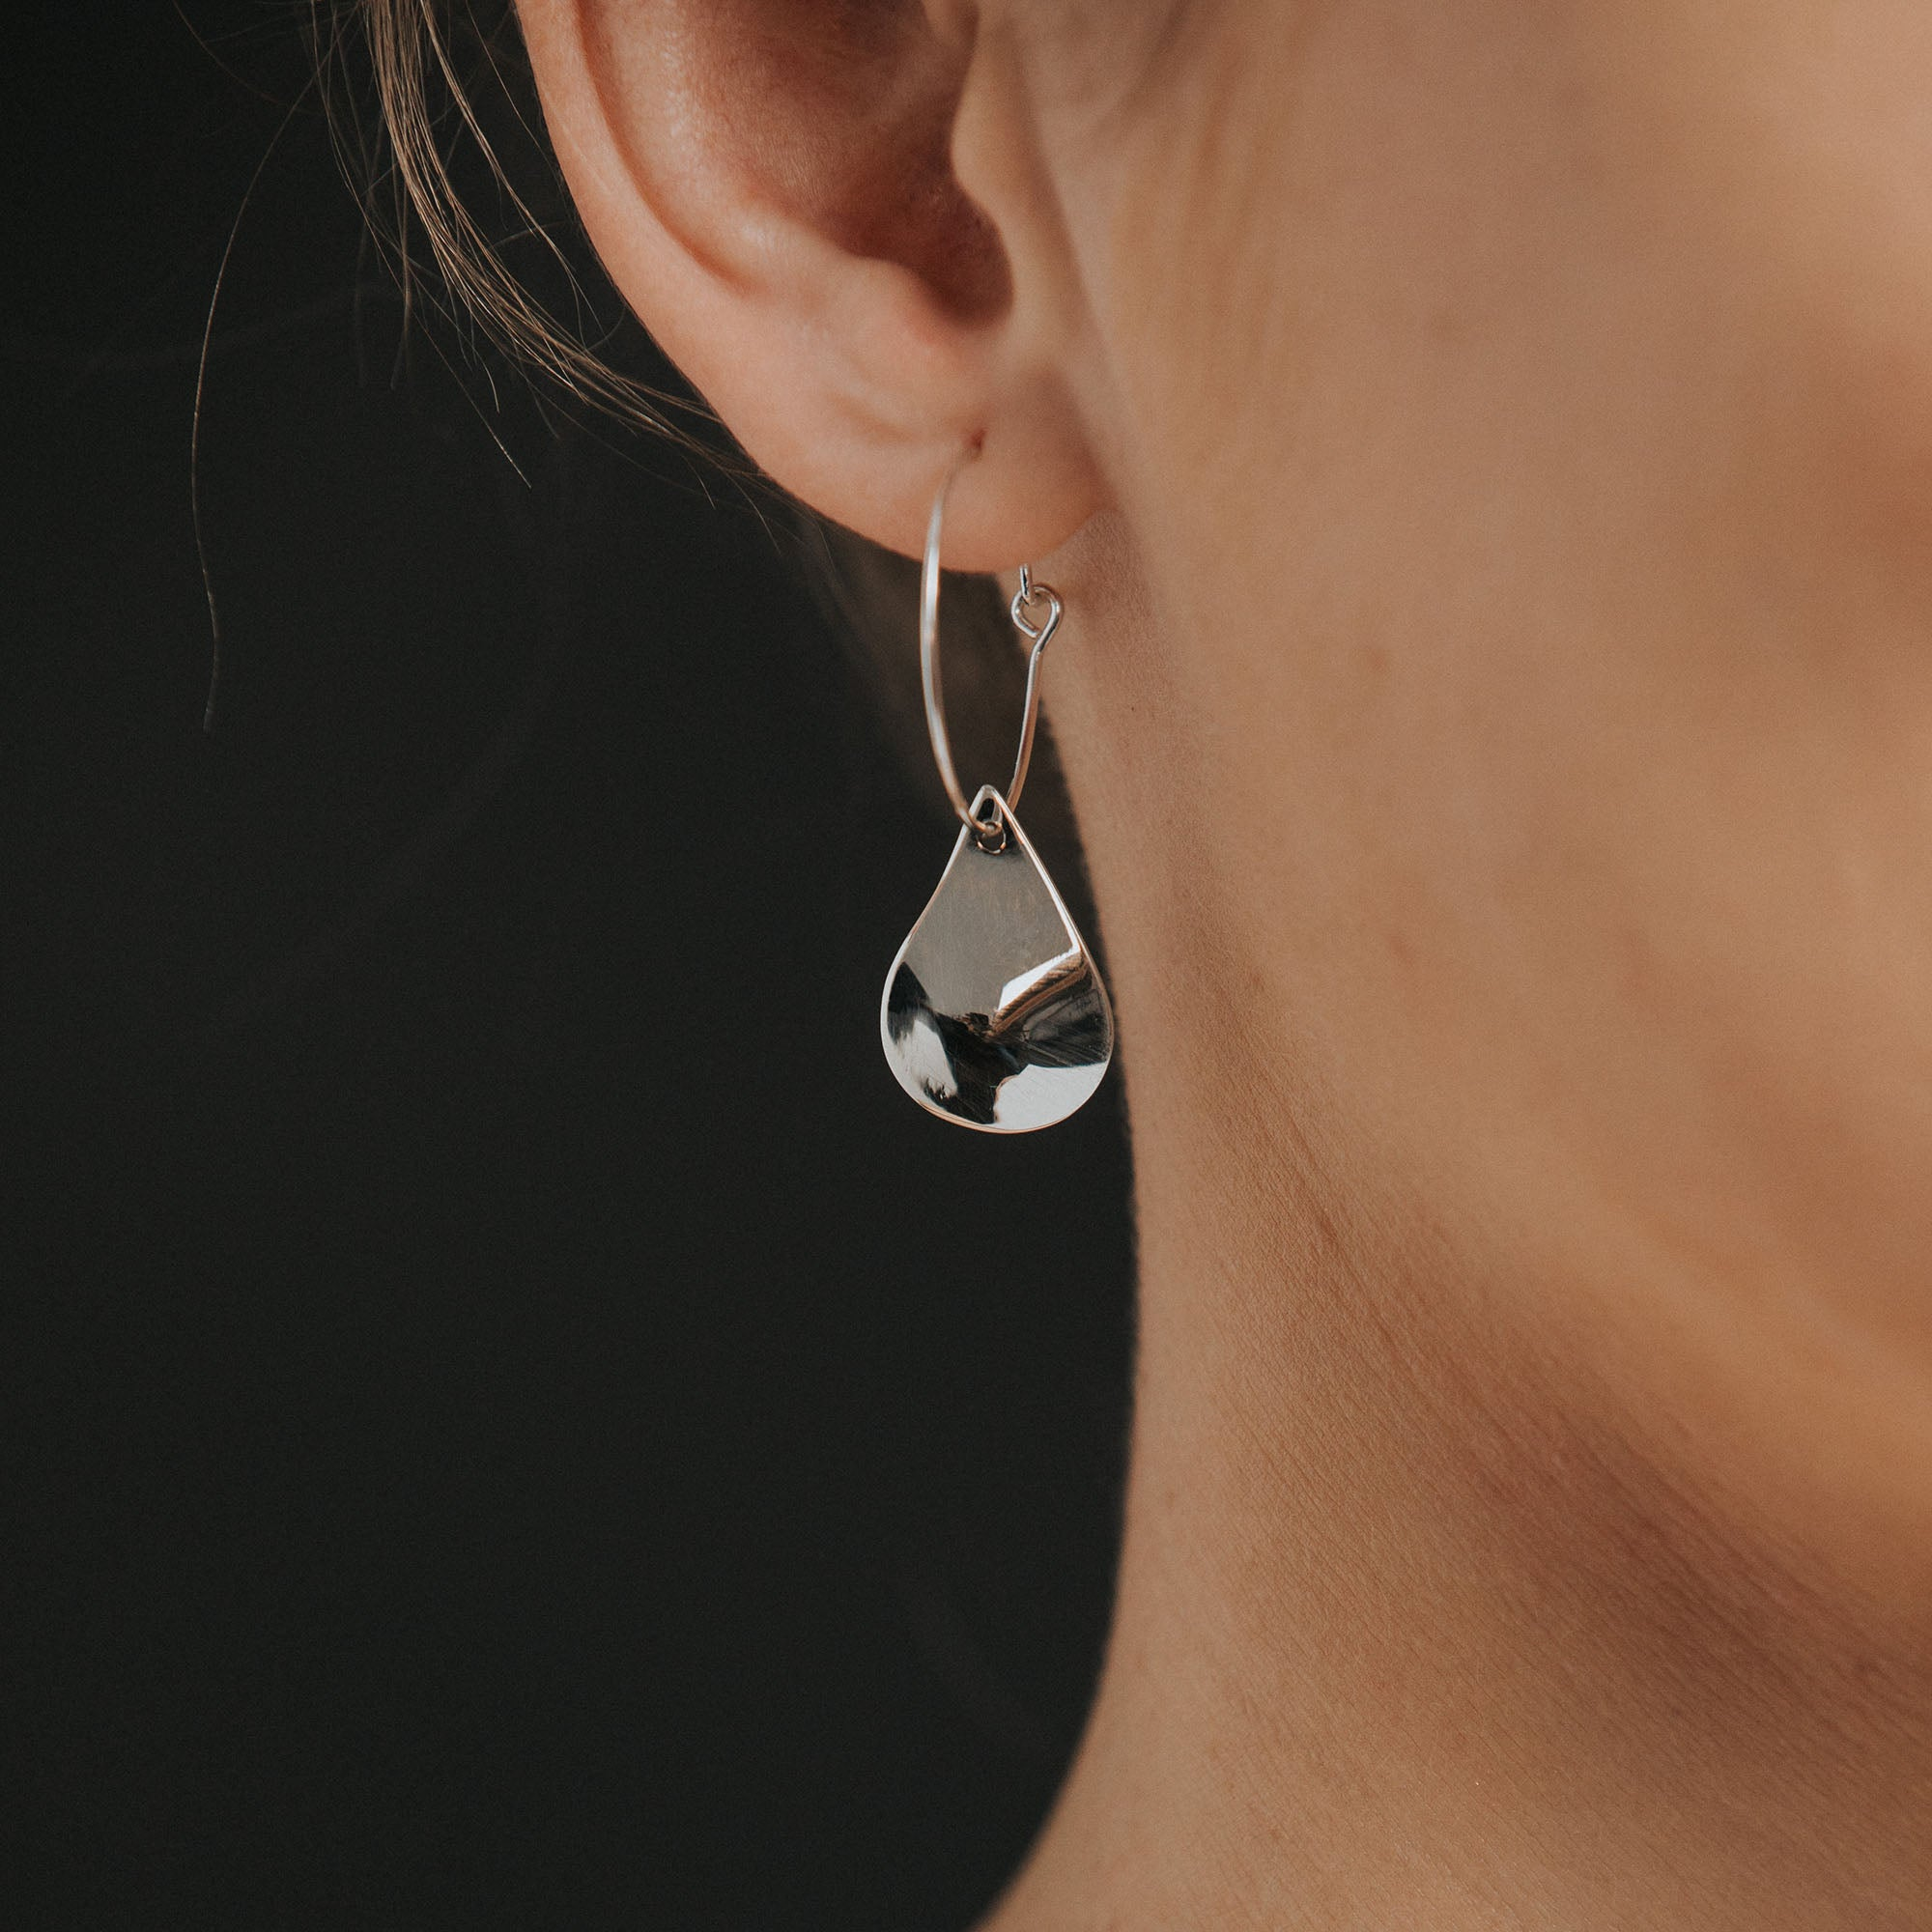 Mully Raindrop Earrings